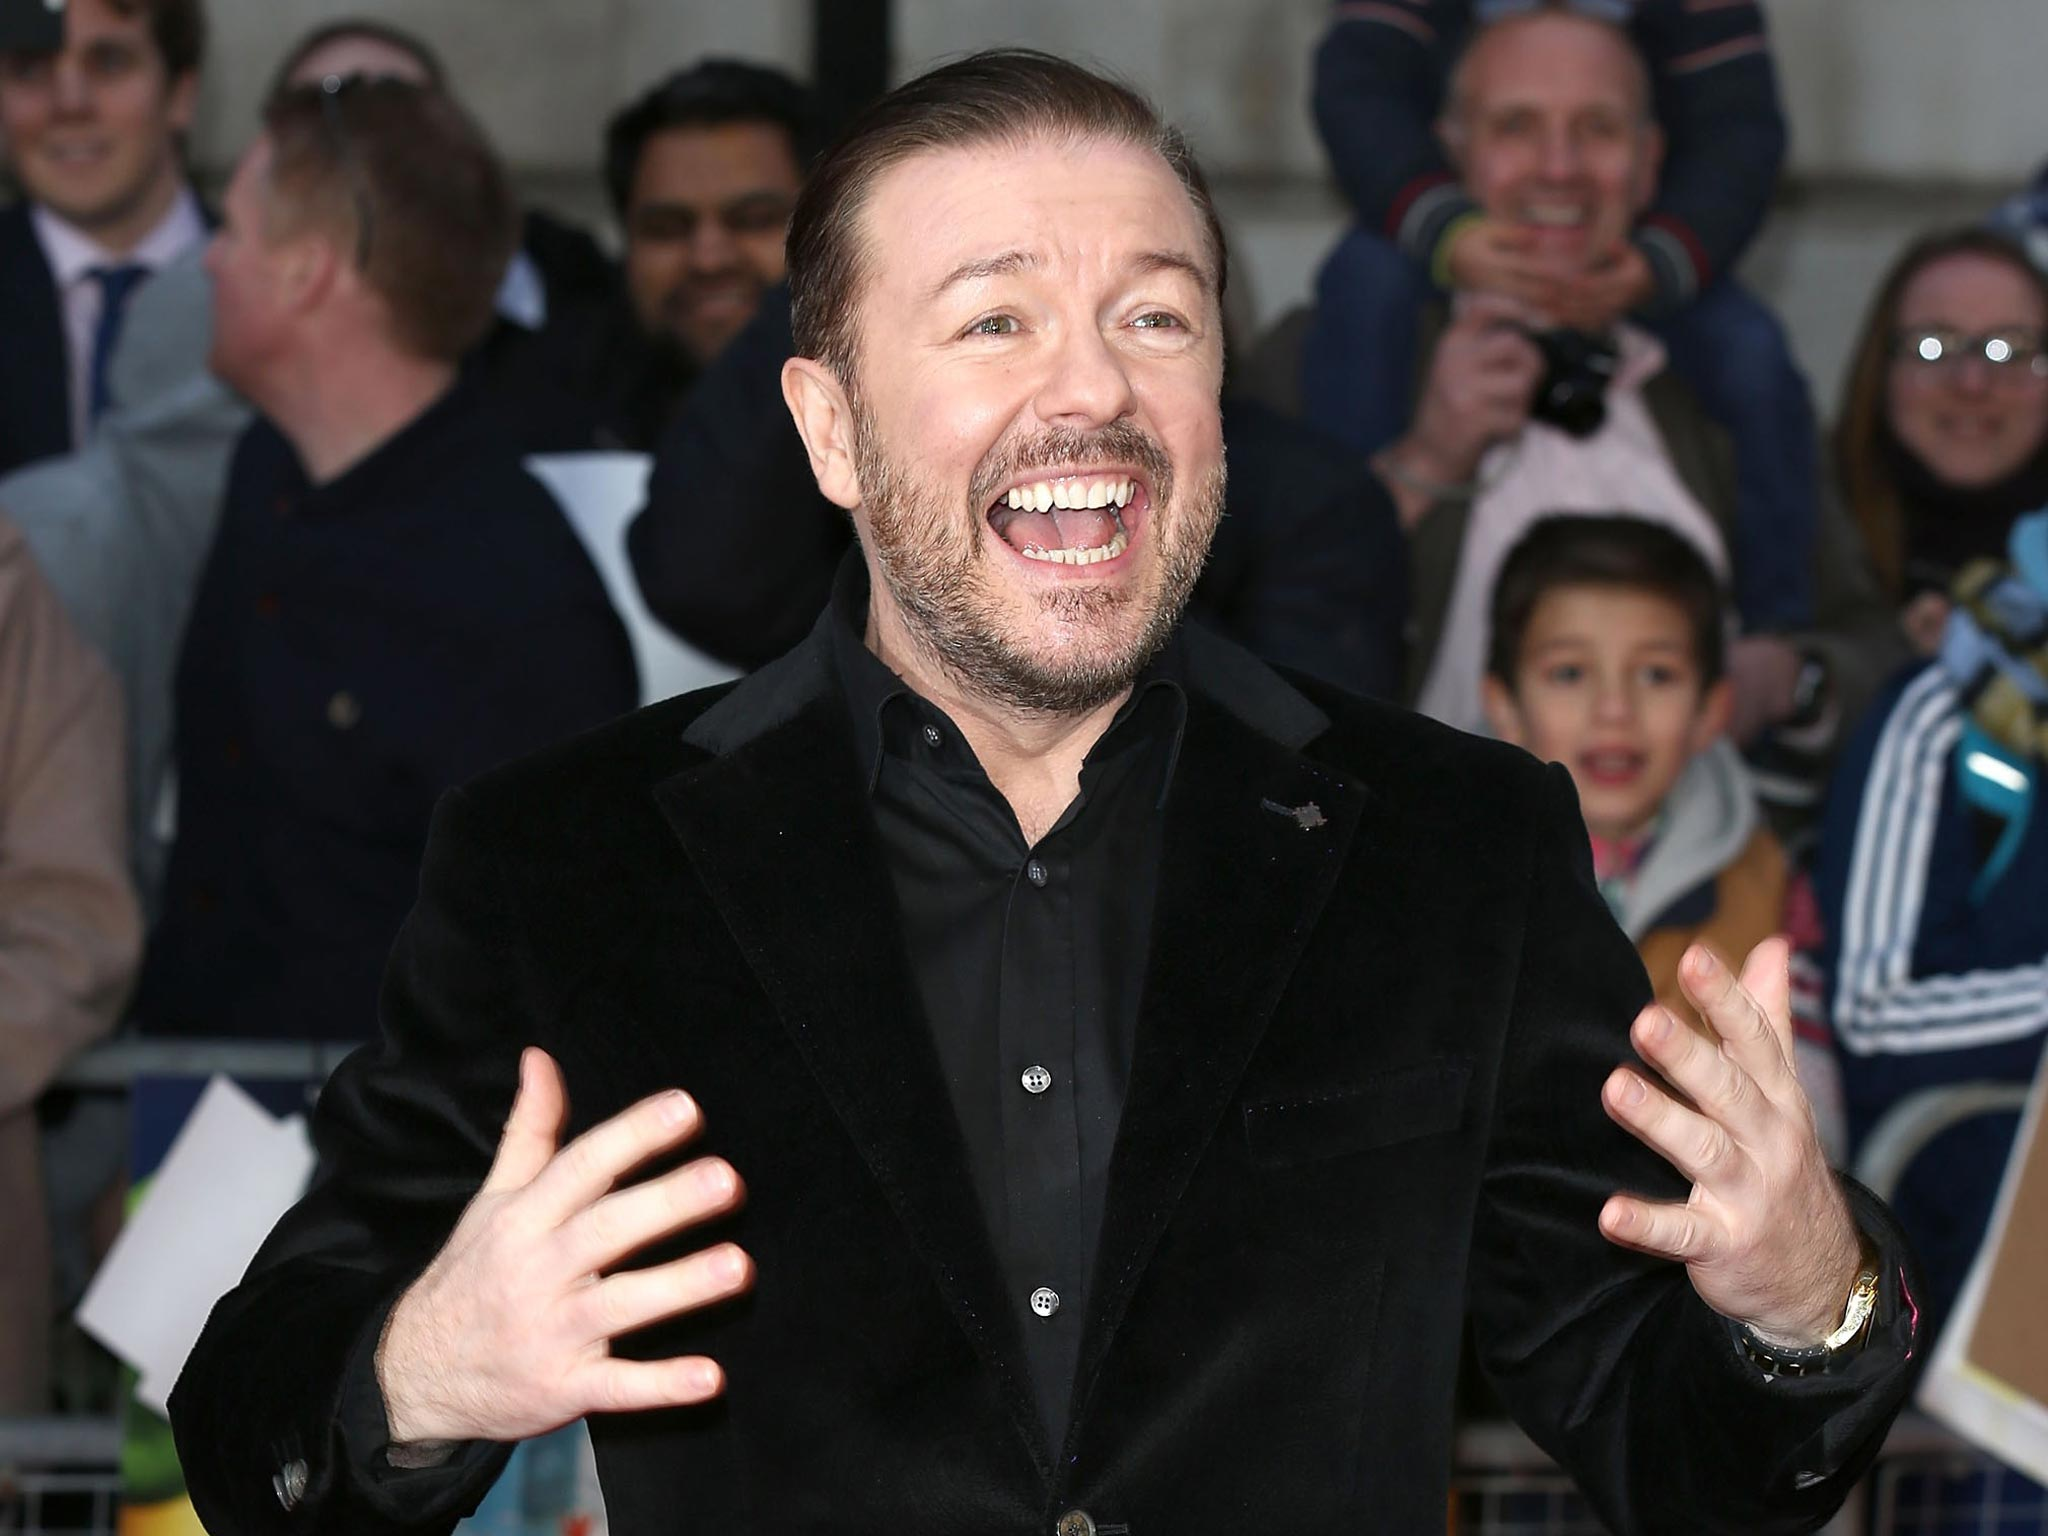 Ricky Gervais highlights worst misconceptions about atheism